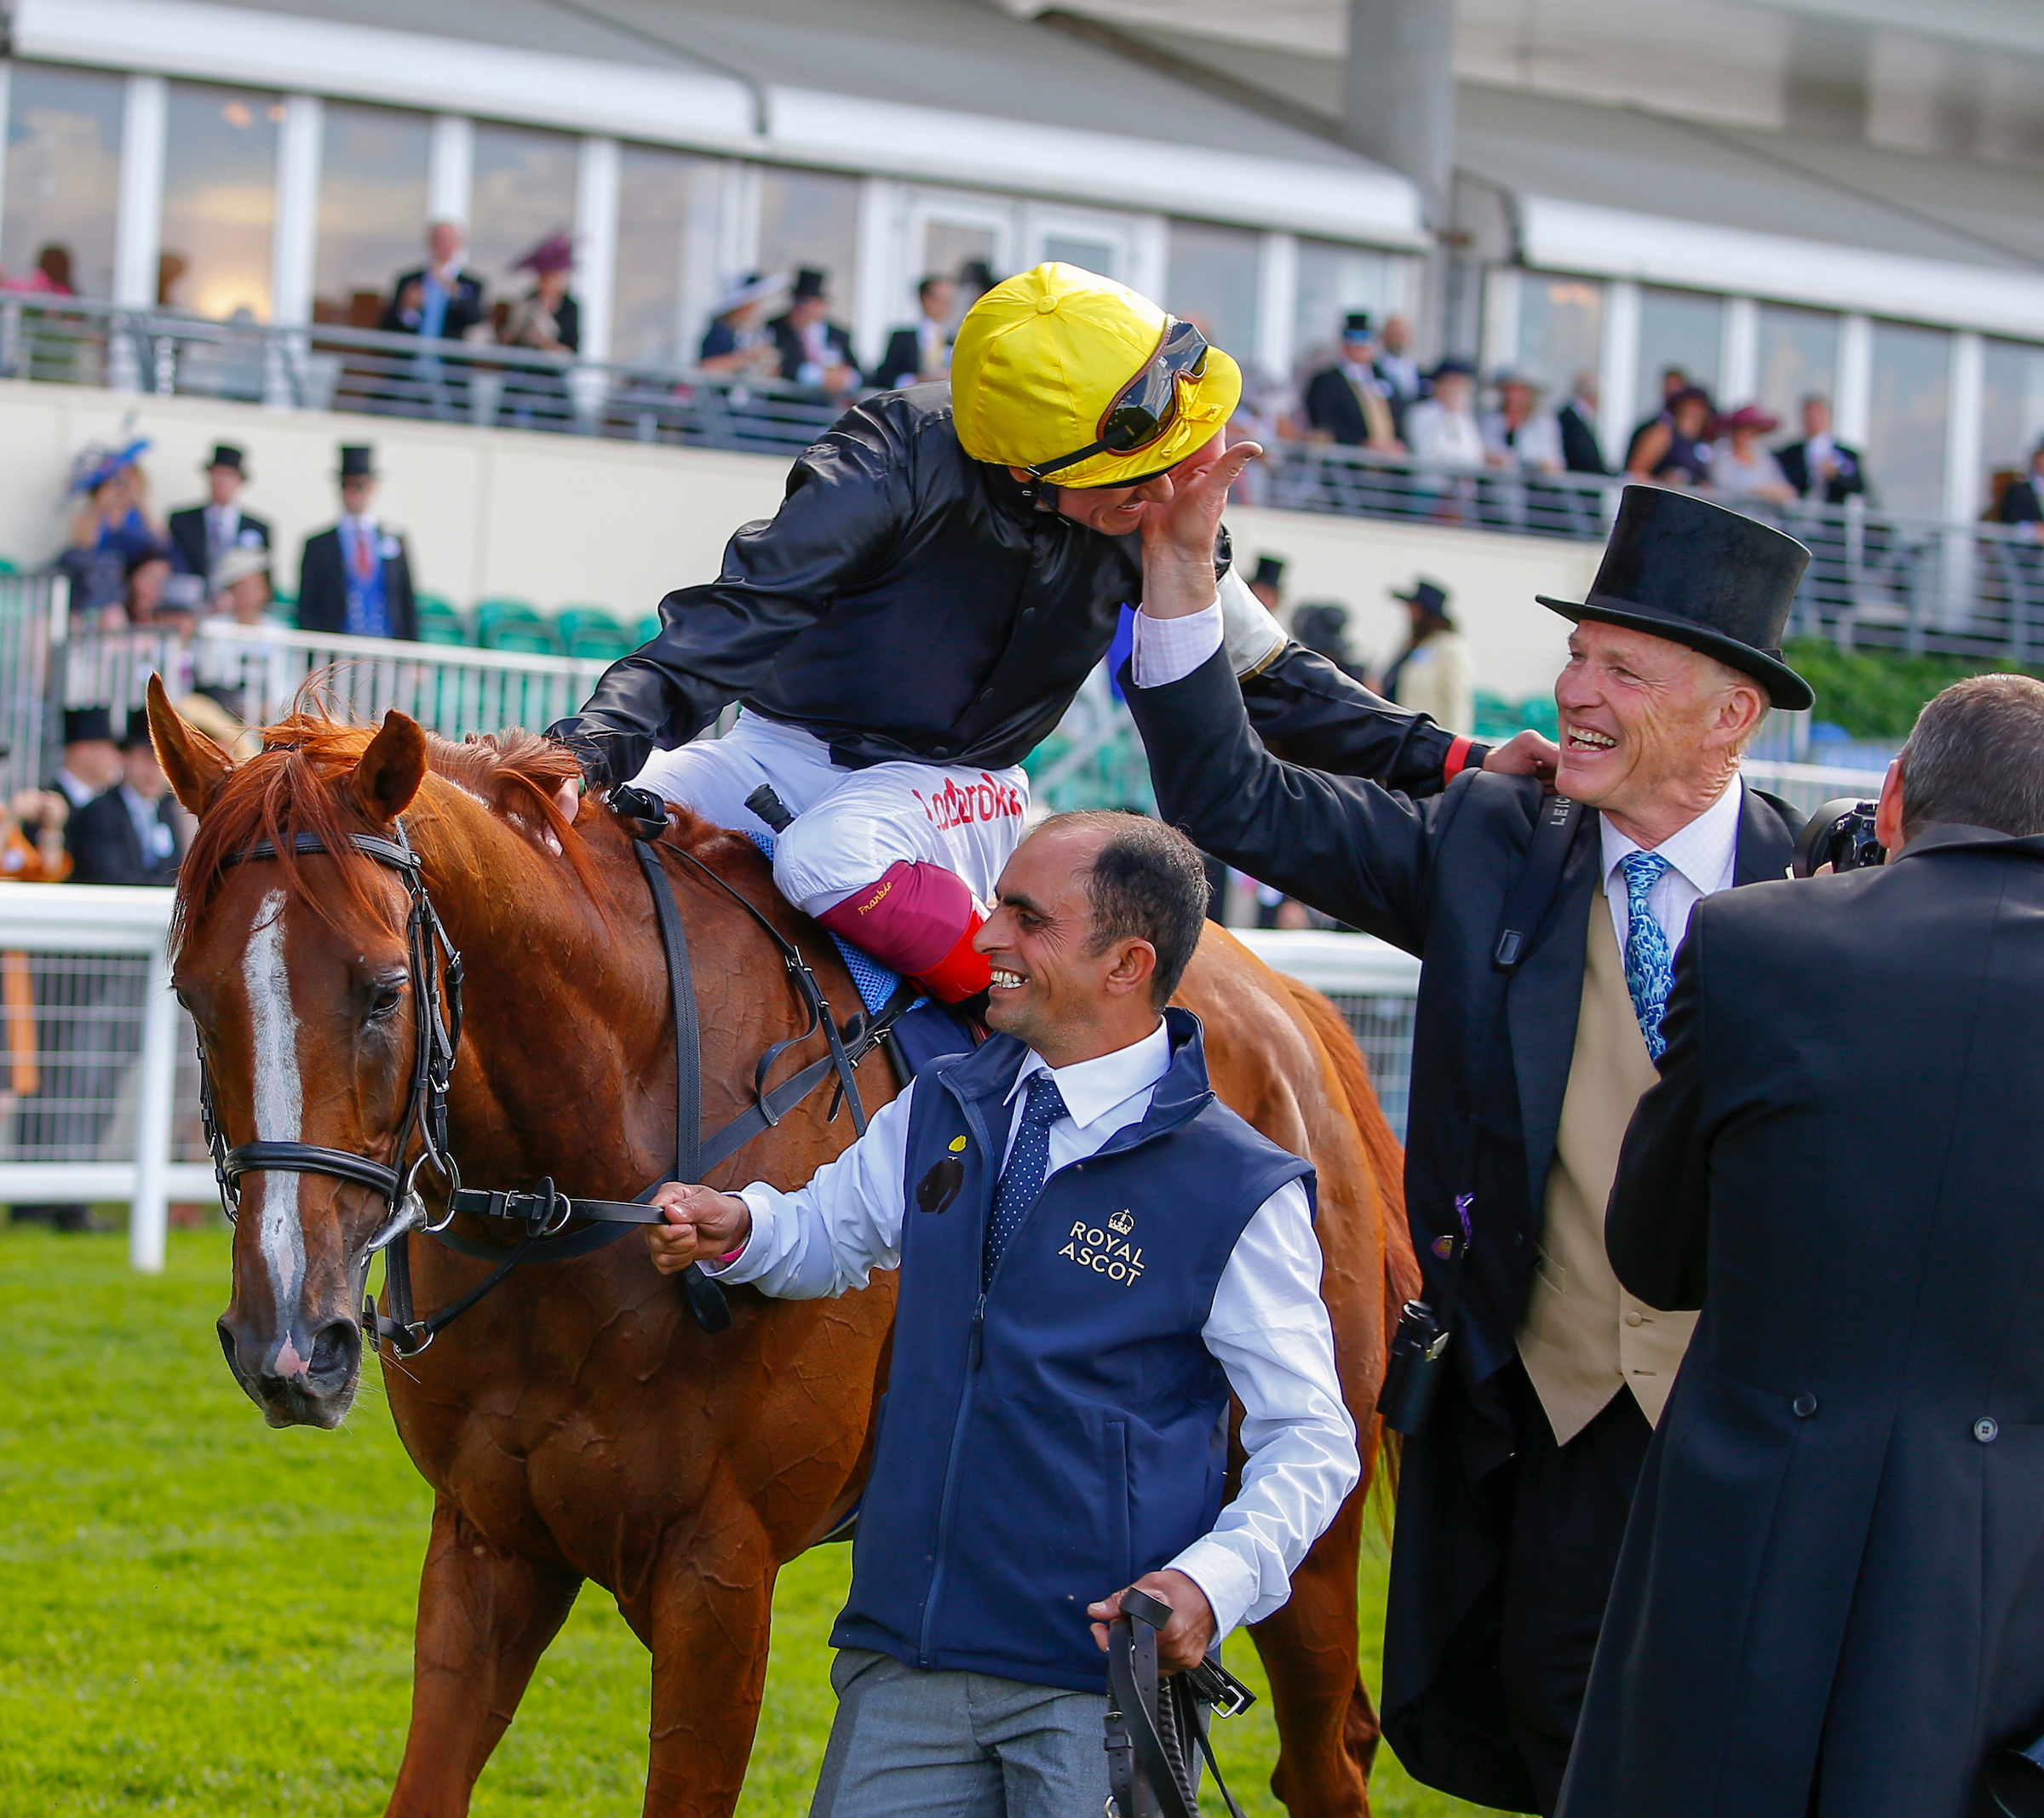 John Gosden and Frankie Dettori celebrate the Gold Cup win of Stradivarius. Pic: Focusonracing